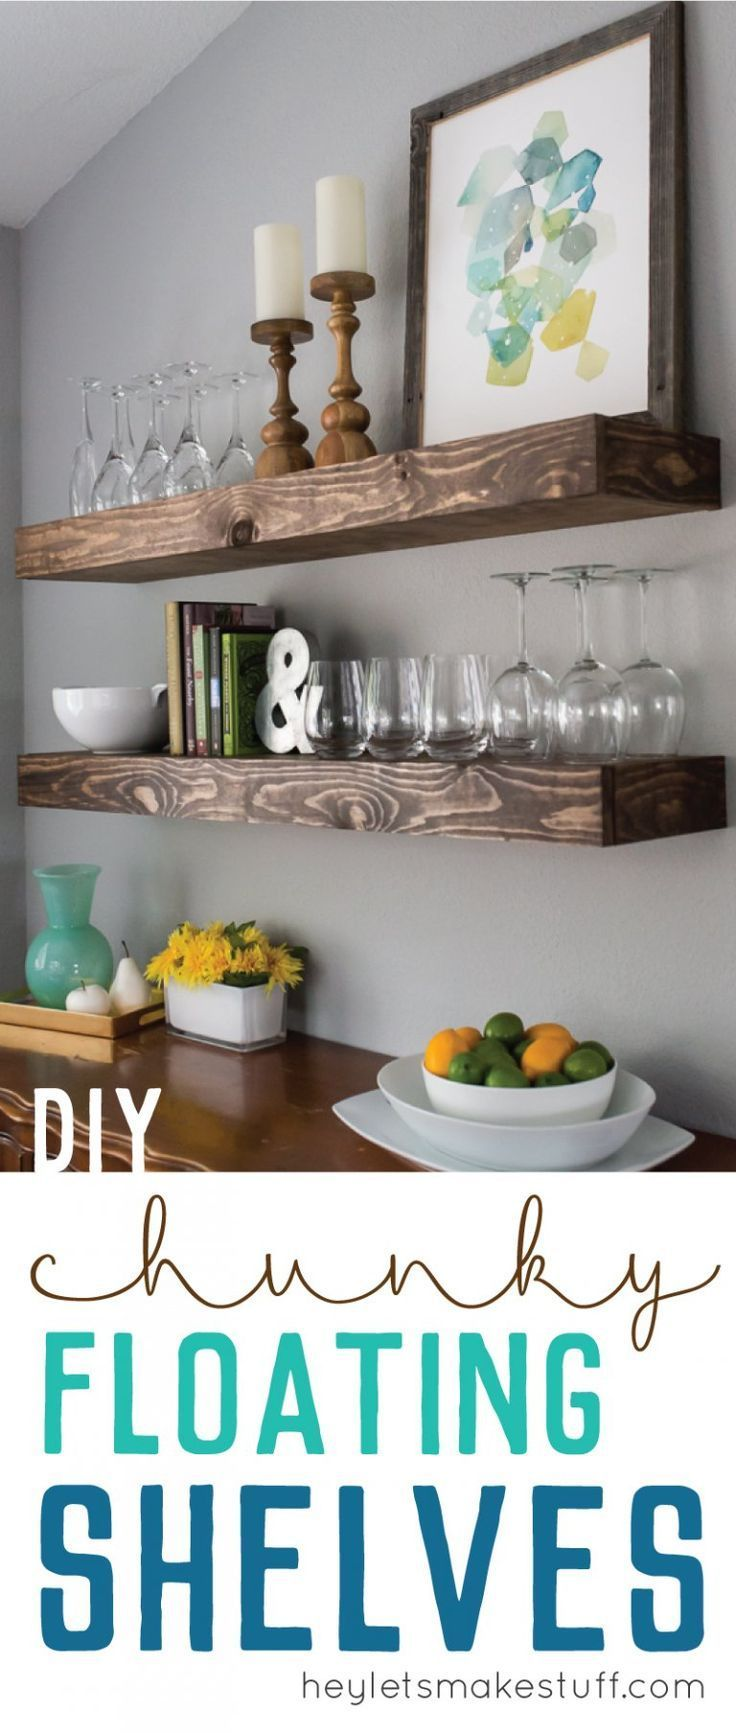 Chunky floating shelves are a great way